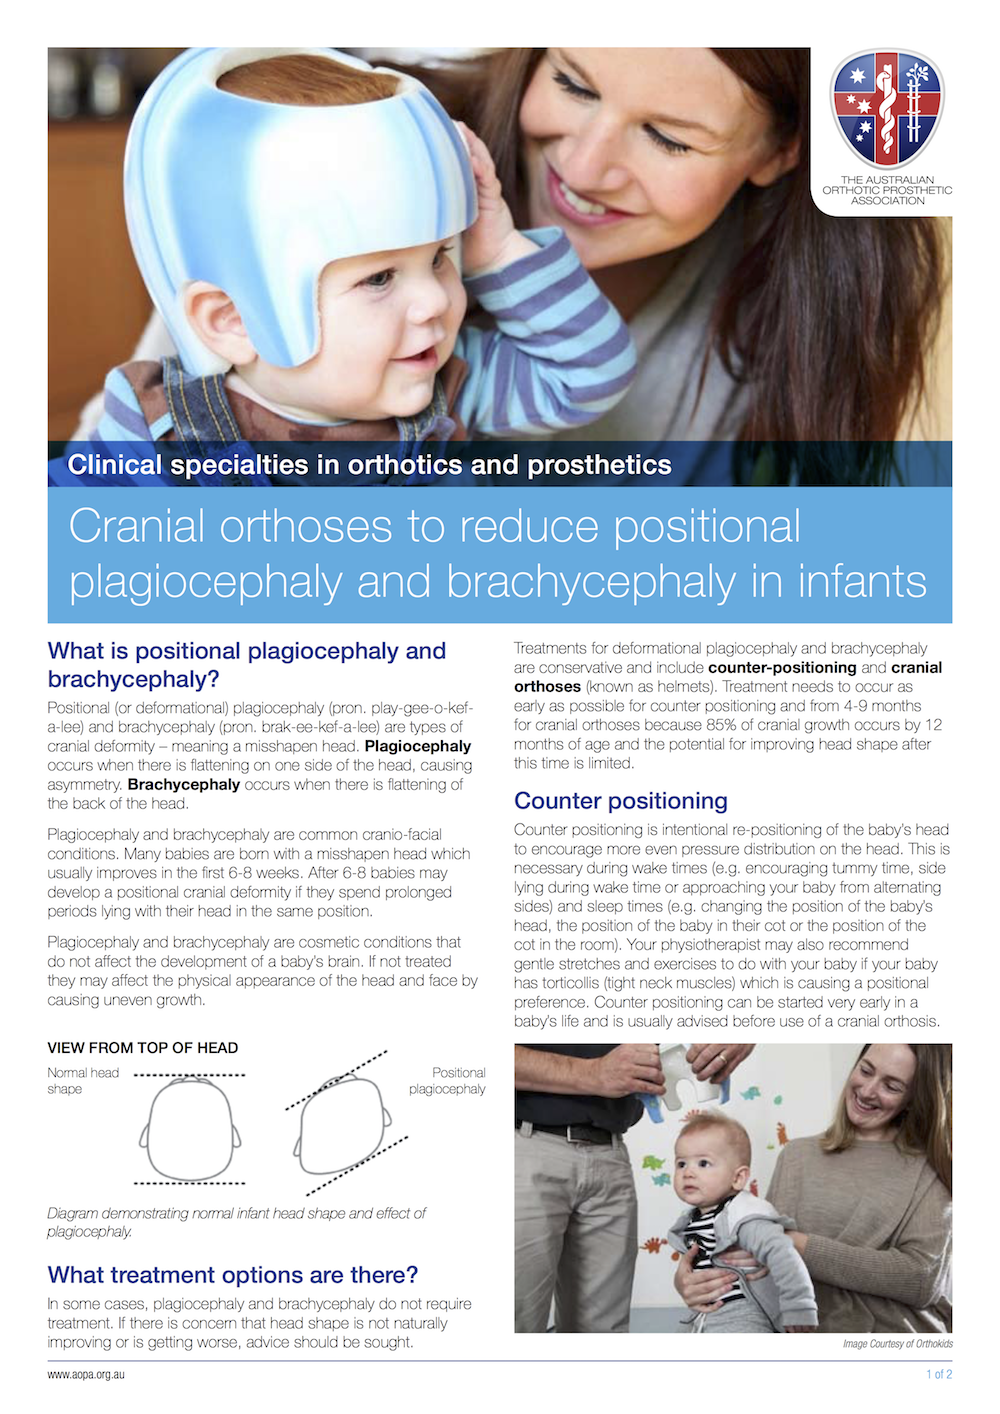 Australian Orthotic Prosthetic Association - Plagiocephaly and Drachycephaly